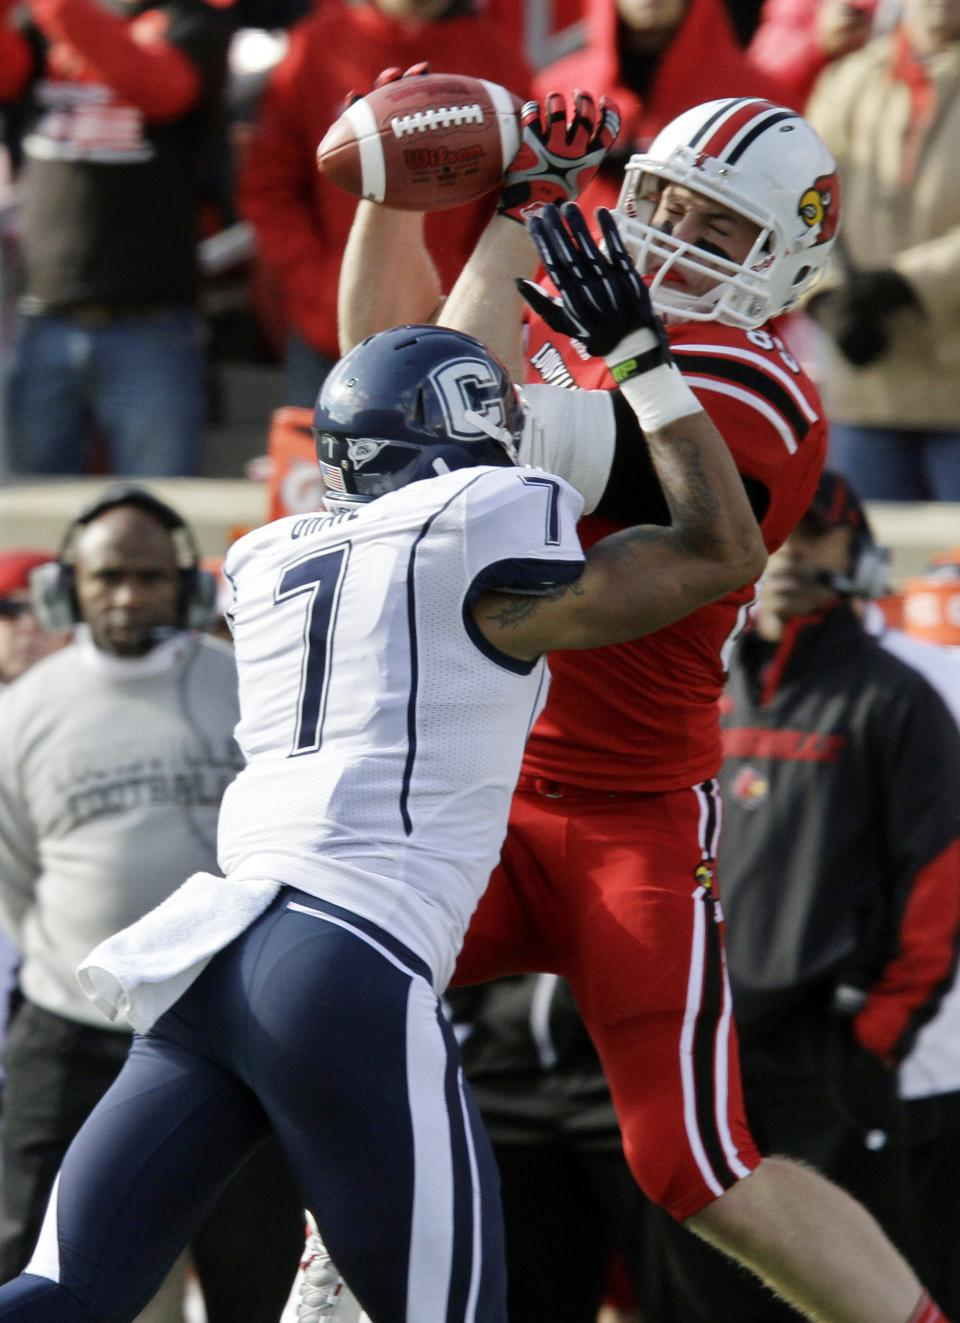 Louisville tight end Ryan Hubbell (83) cannot gather in a pass as Connecticut's Dwayne Gratz (7) breaks up the play during the first half of an NCAA college football game in Louisville, Ky., Saturday, Nov. 24, 2012.  (AP Photo/Garry Jones)